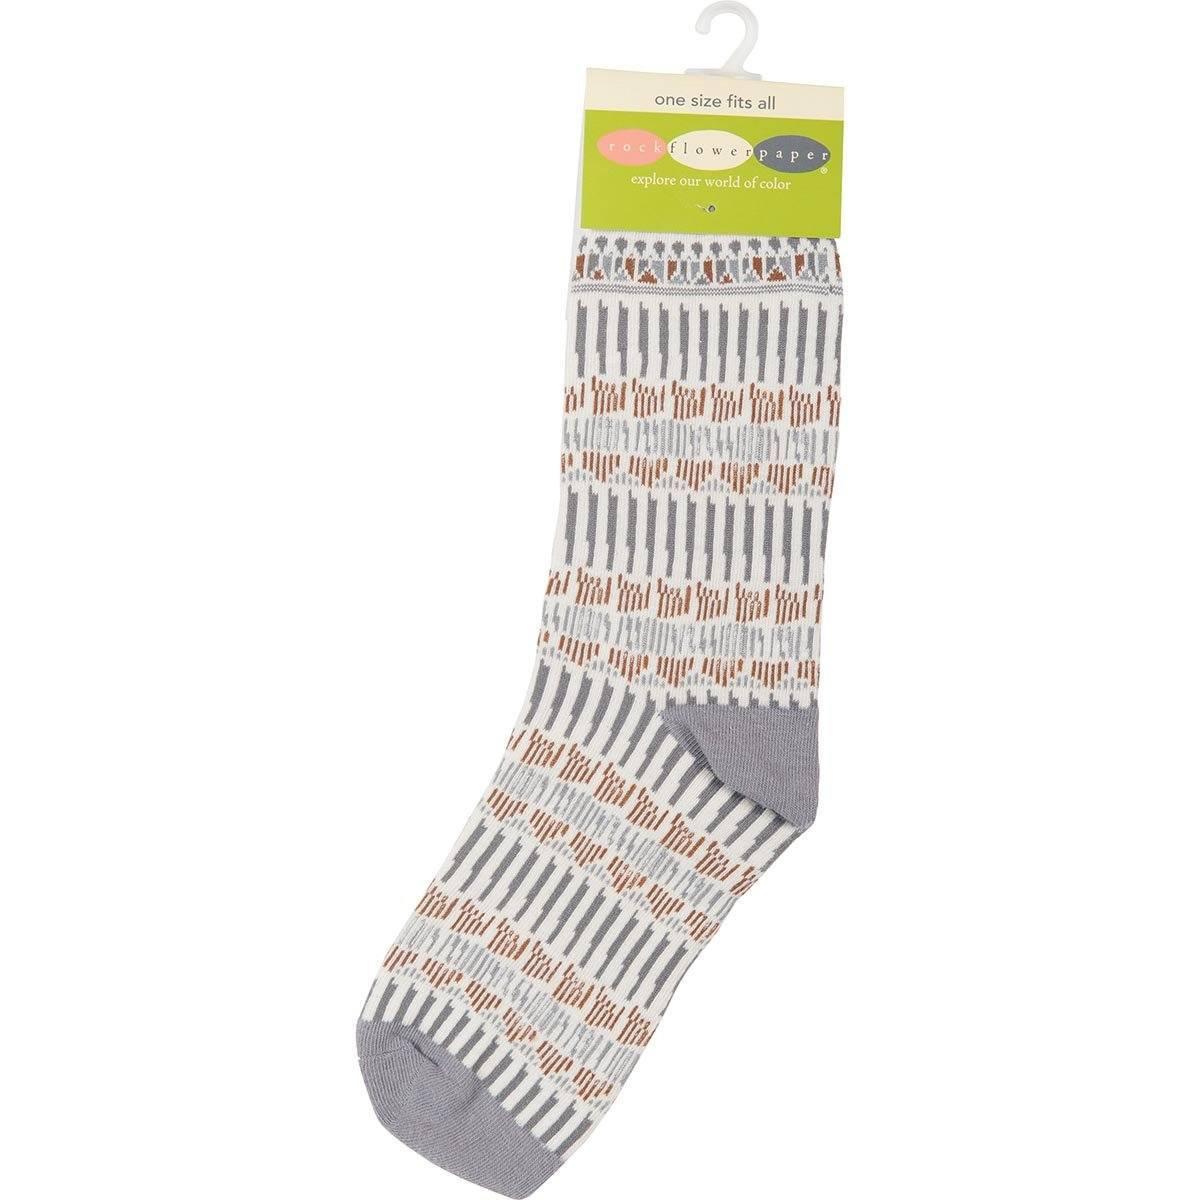 Lila Tan Pair of Crew Length Socks